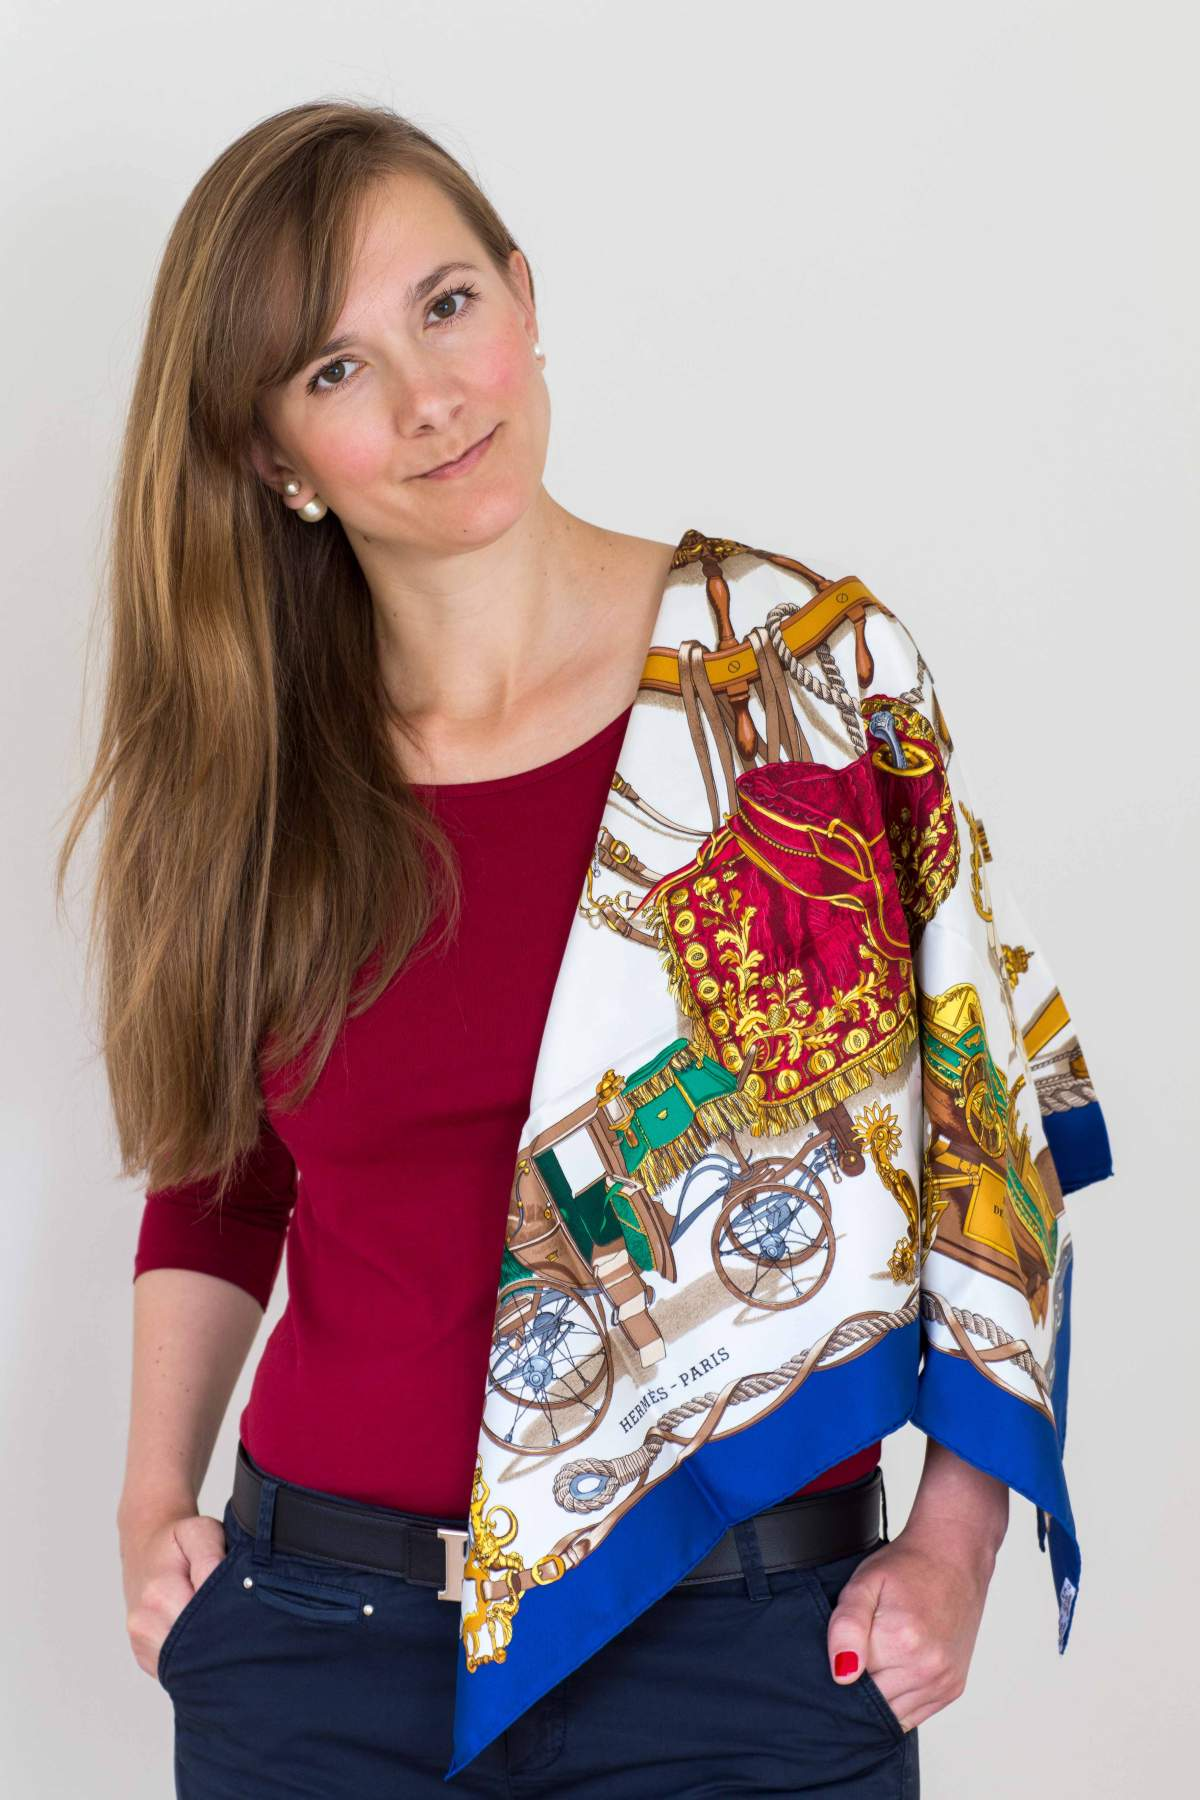 Musee, philippe ledoux, Hermes scarf, carre, knot, knotting, tutorial, hermes carre, Hermes Schal, эрмес, платок, карре, как красиво завязать платок, how to wear a scarf